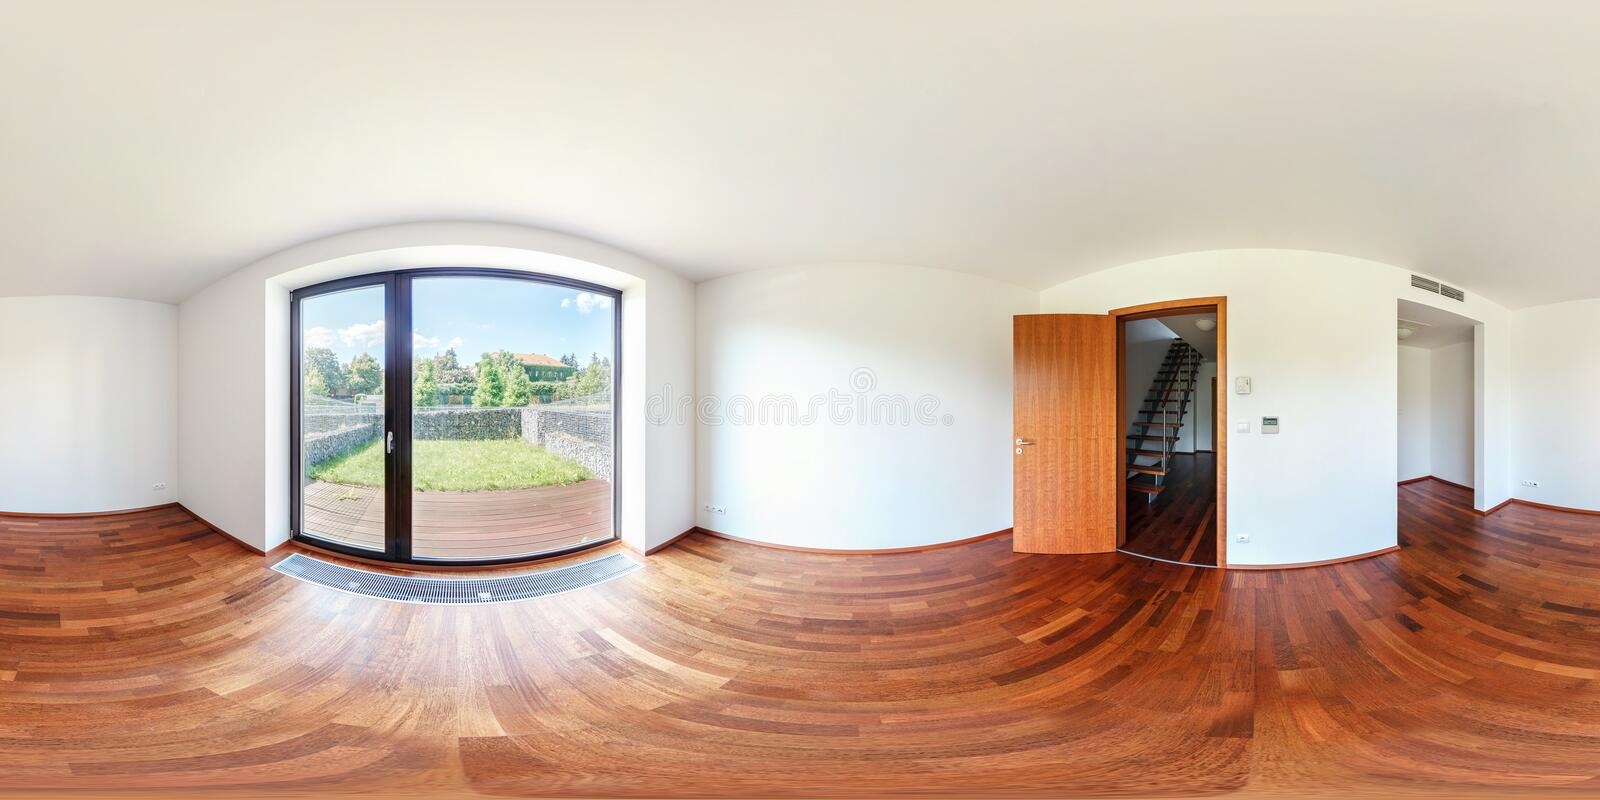 PRAGA, CHECH REPUBLIC - JULY 28, 2013: Full spherical 360 degrees seamless panorama in equirectangular equidistant projection,. Panorama in empty interior stock photography